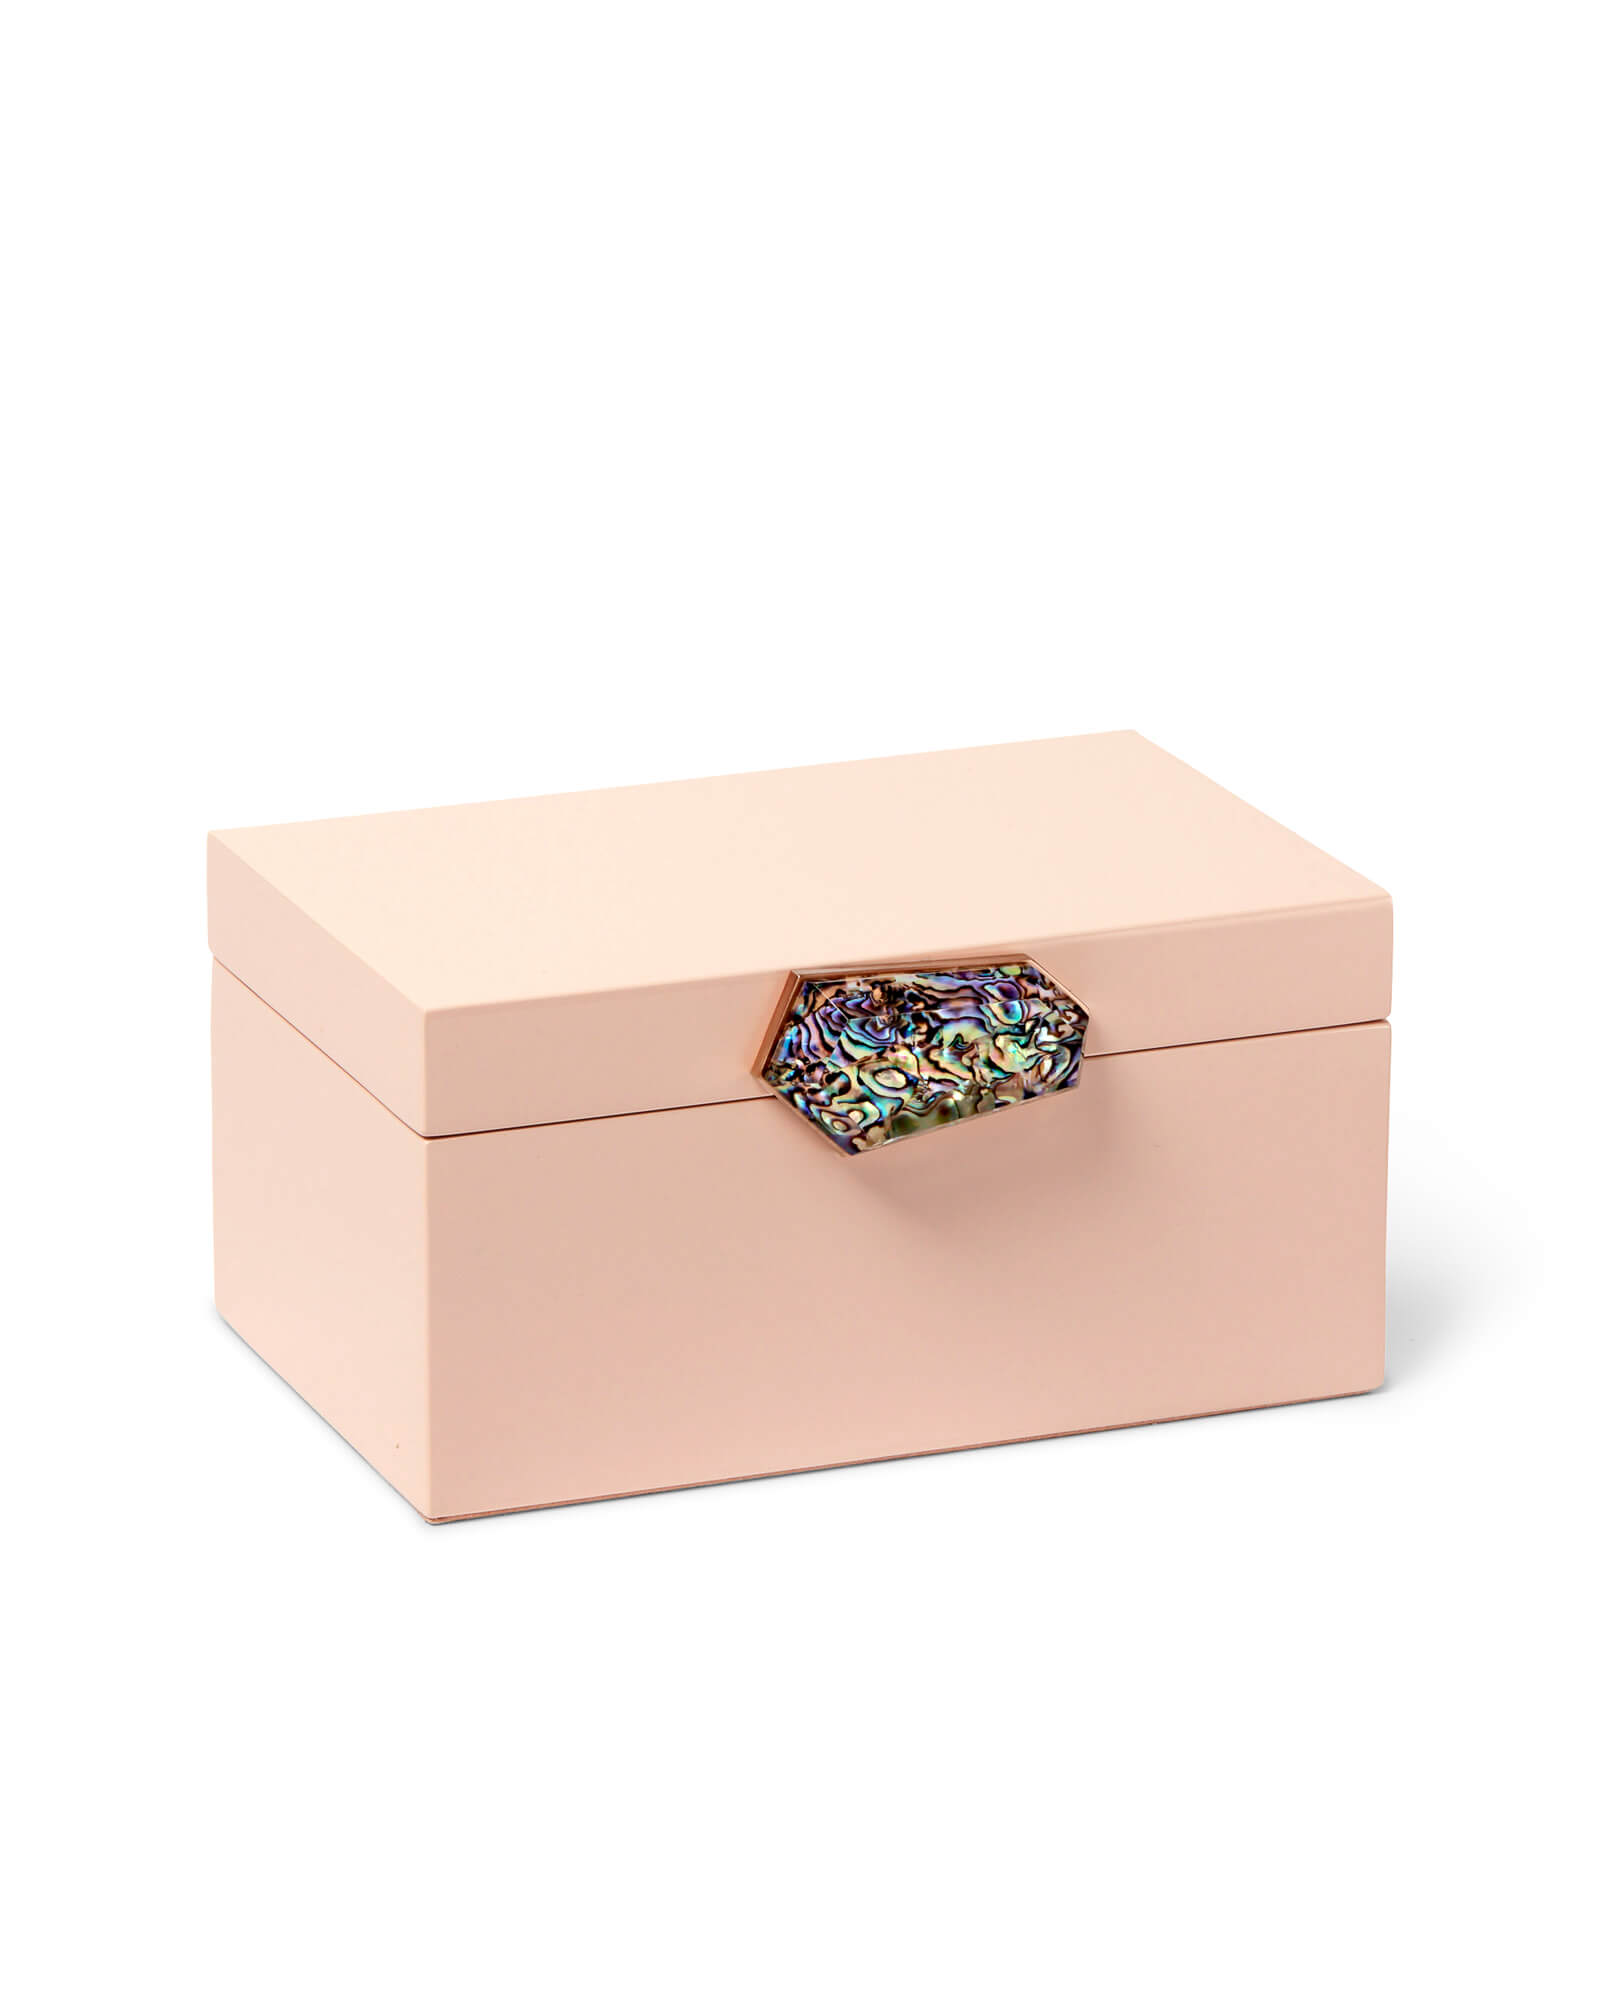 Small Jewelry Box in Blush Lacquer with Abalone Shell